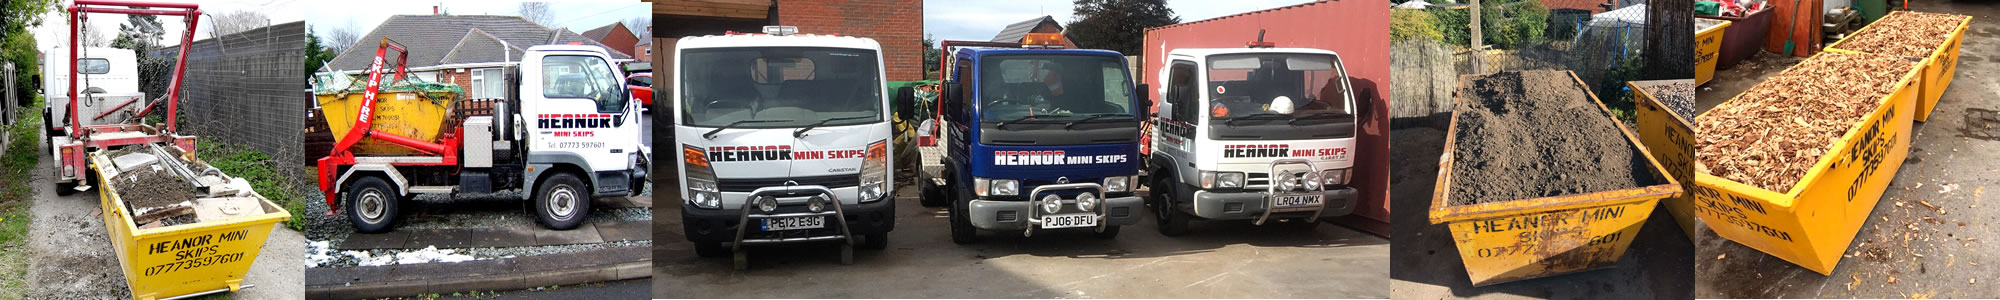 A number of pictures of skips and skip lorries.